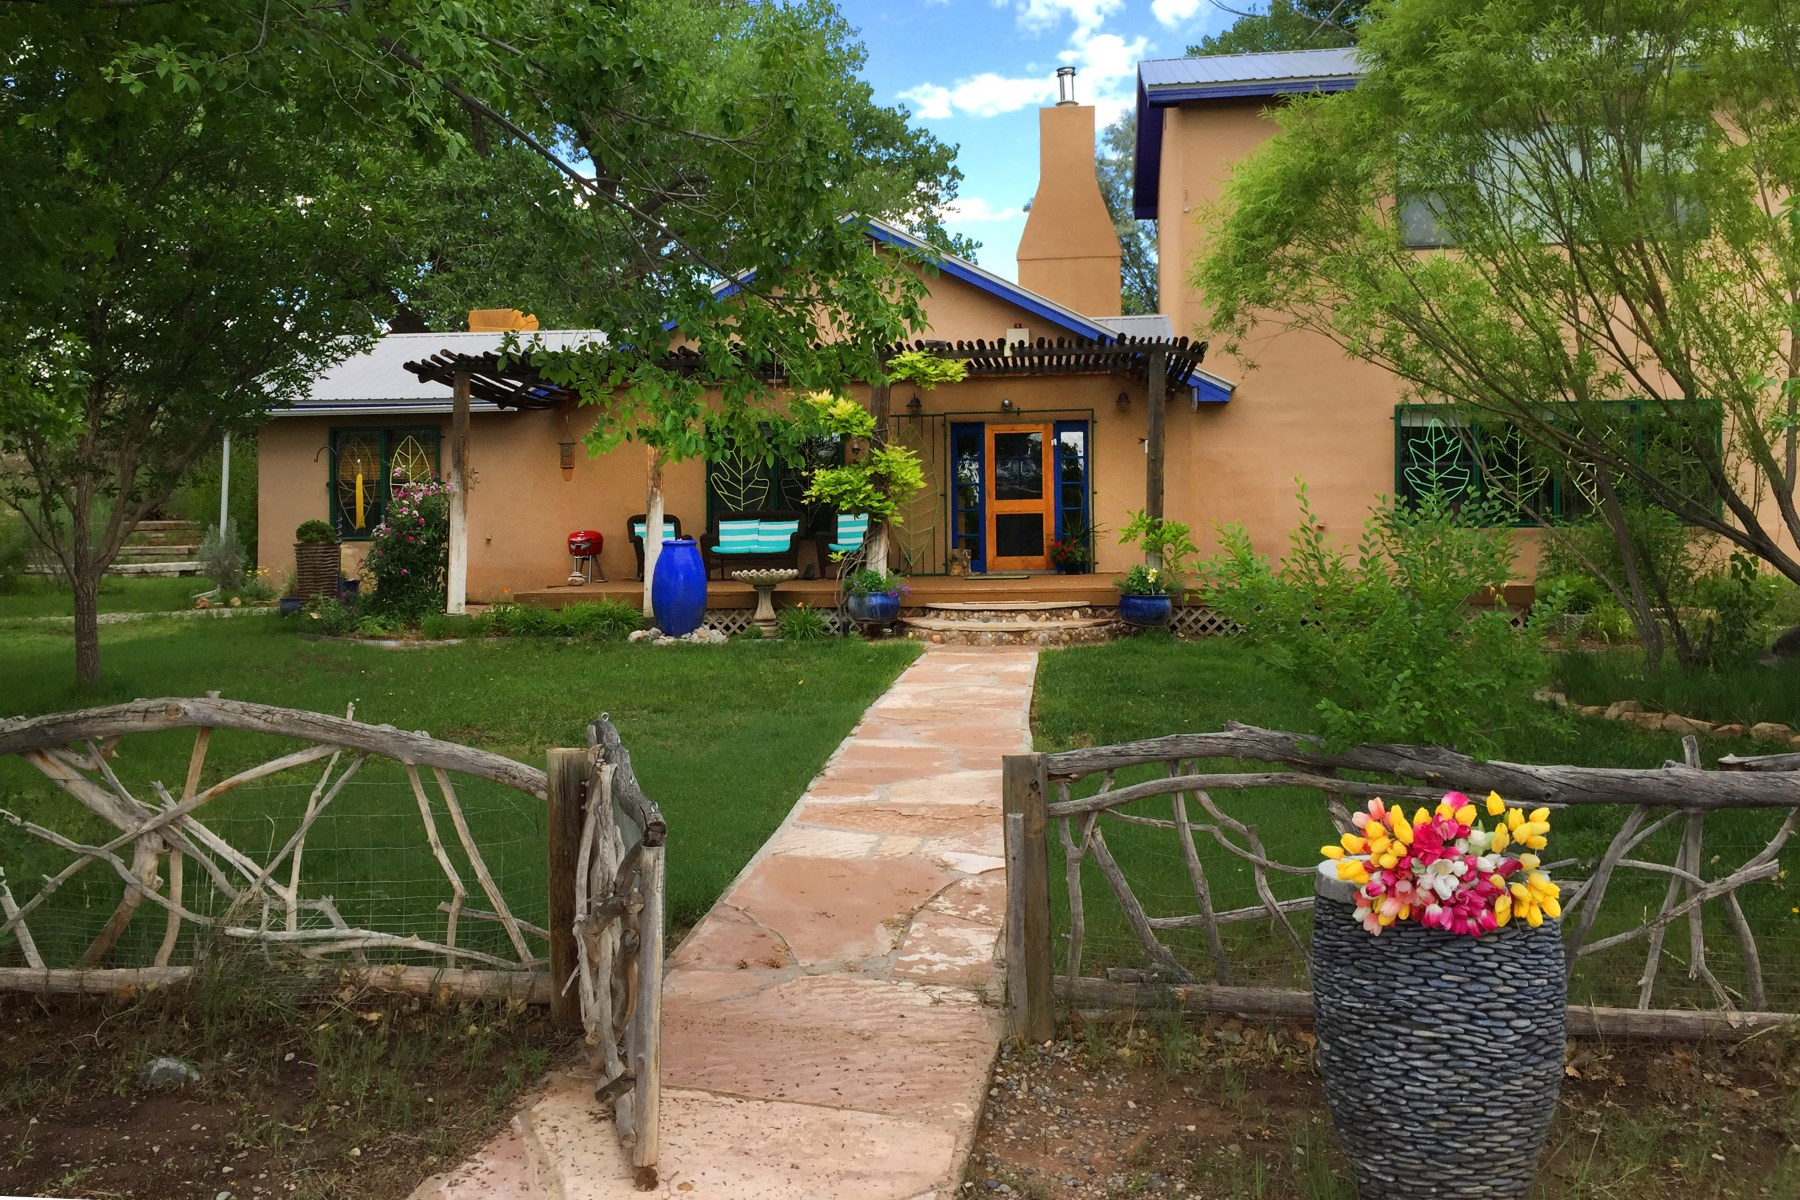 Single Family Home for Sale at County Road 142 Wonderland Compound. Abiquiu, New Mexico, 87510 United States